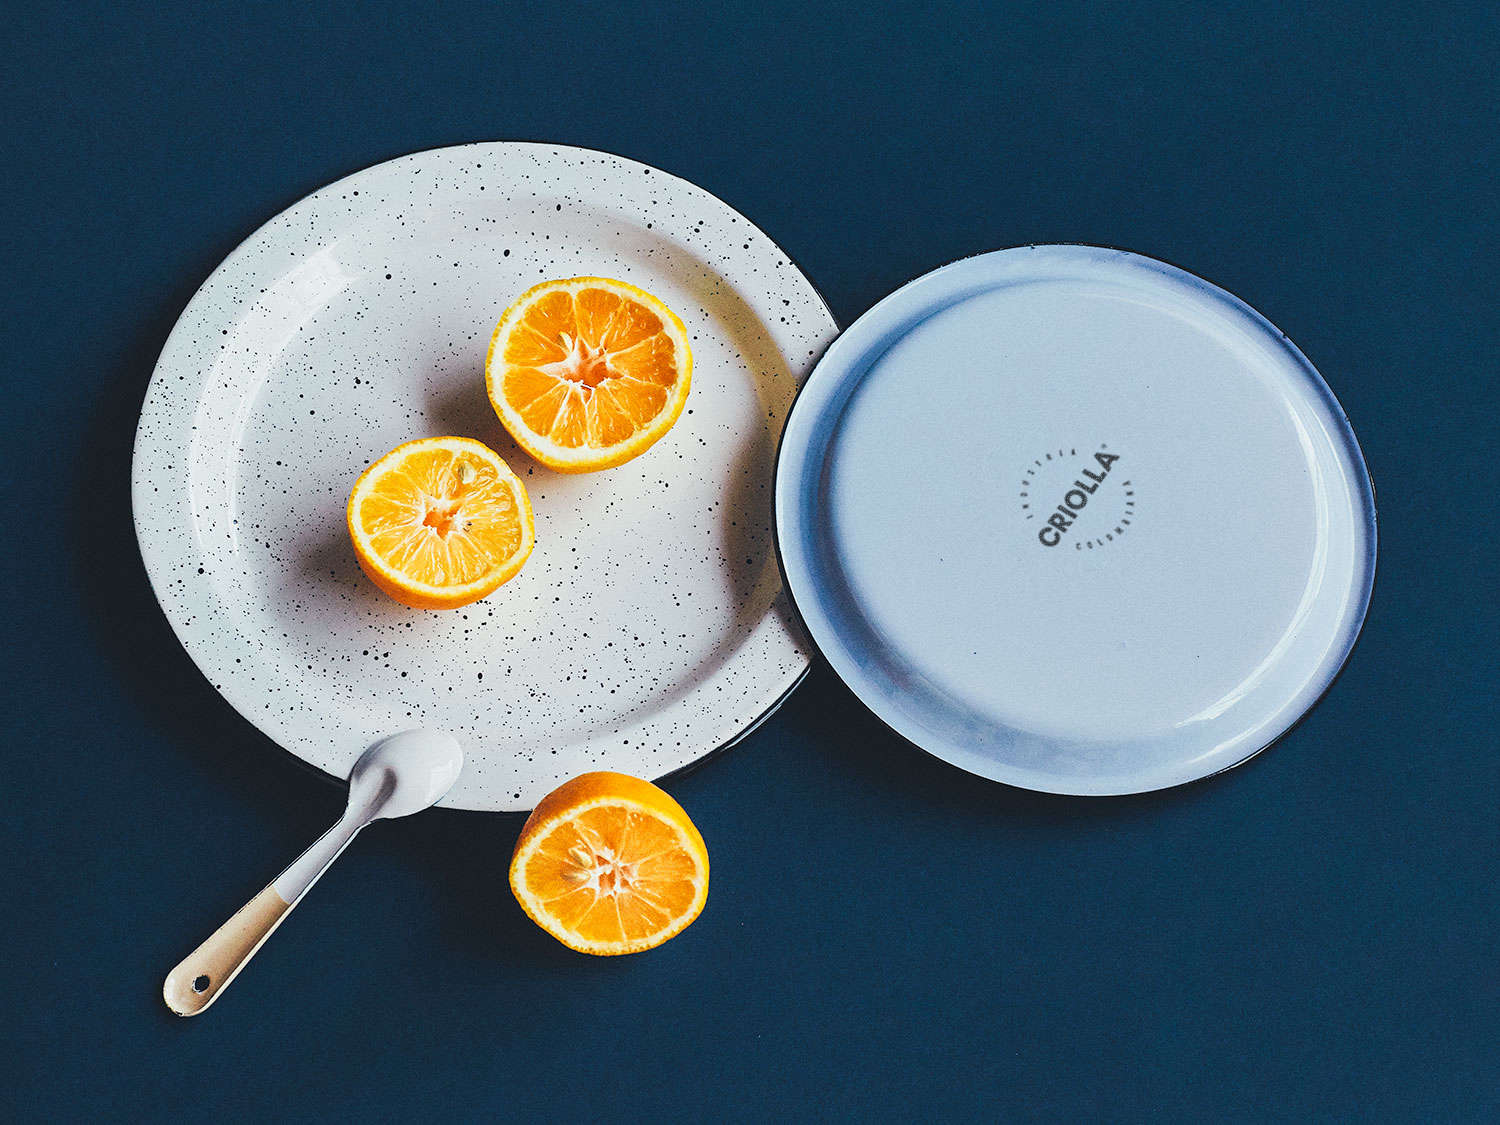 Criolla Plate with Oranges by Dirk Mai for Someware on Remodelista